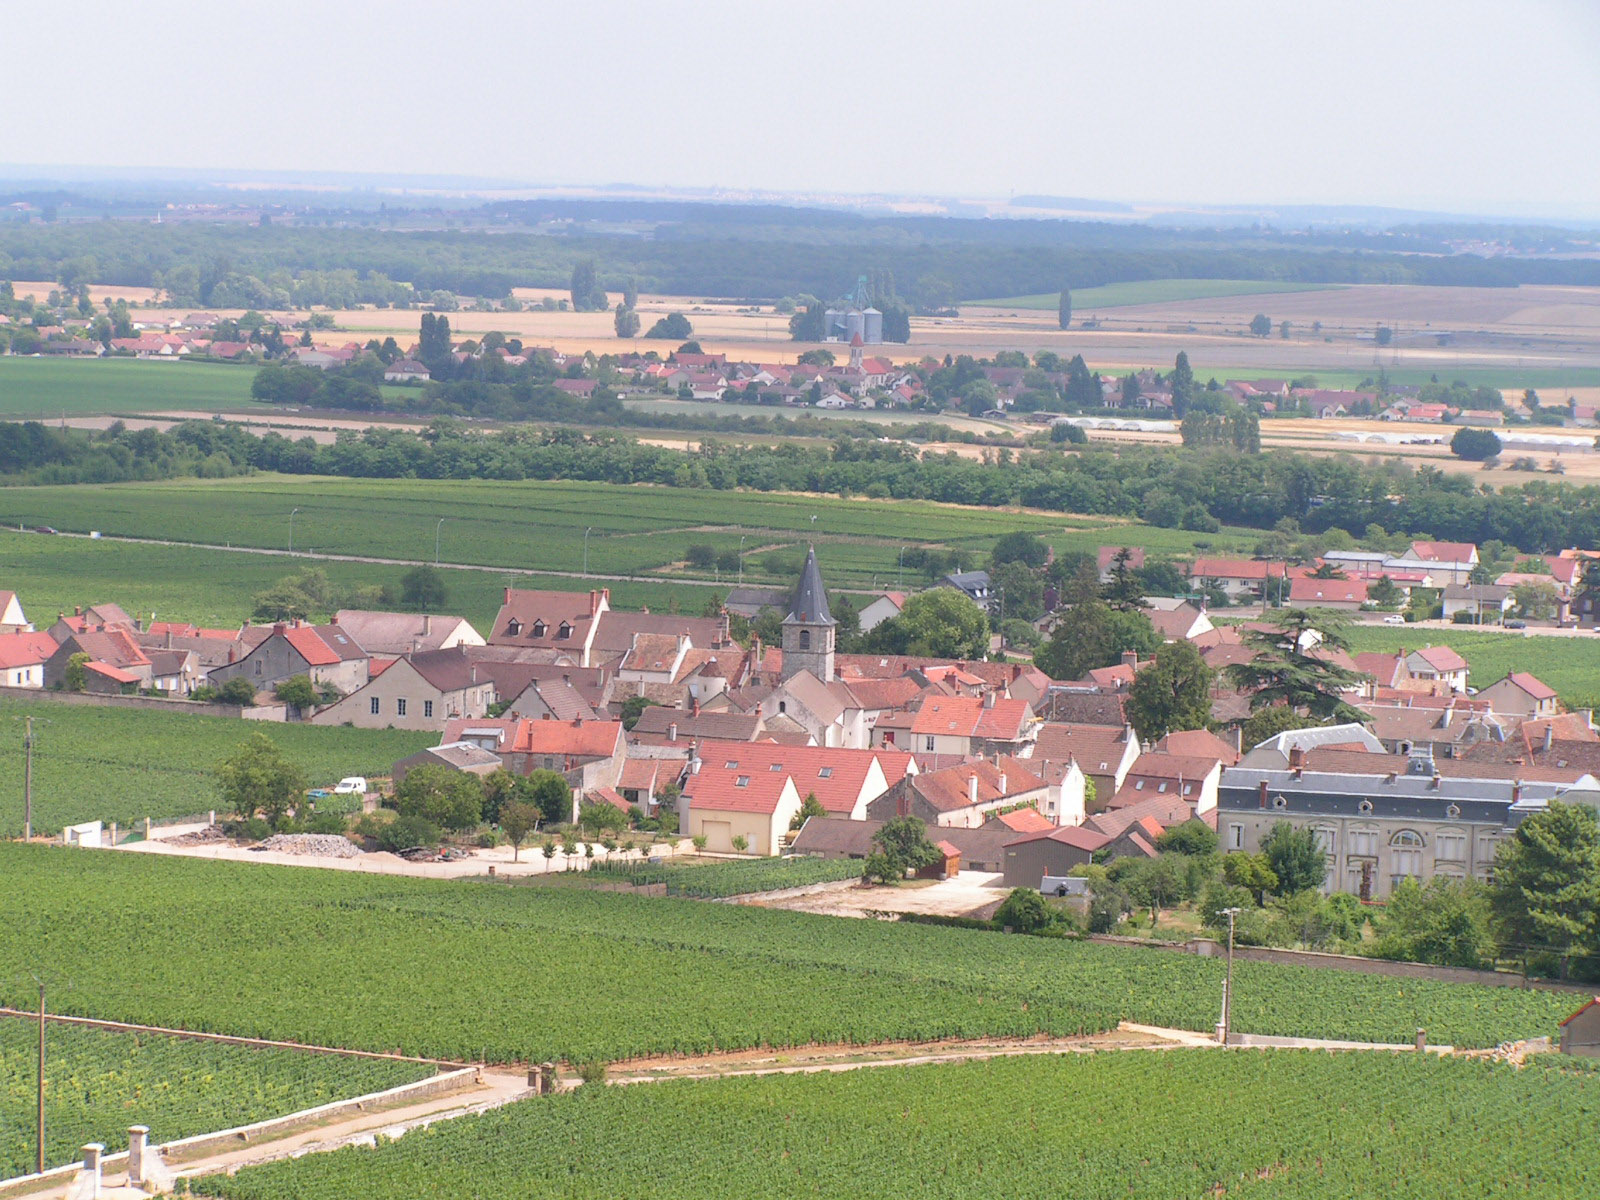 https://upload.wikimedia.org/wikipedia/commons/2/2b/Vosne-Romanee.jpg